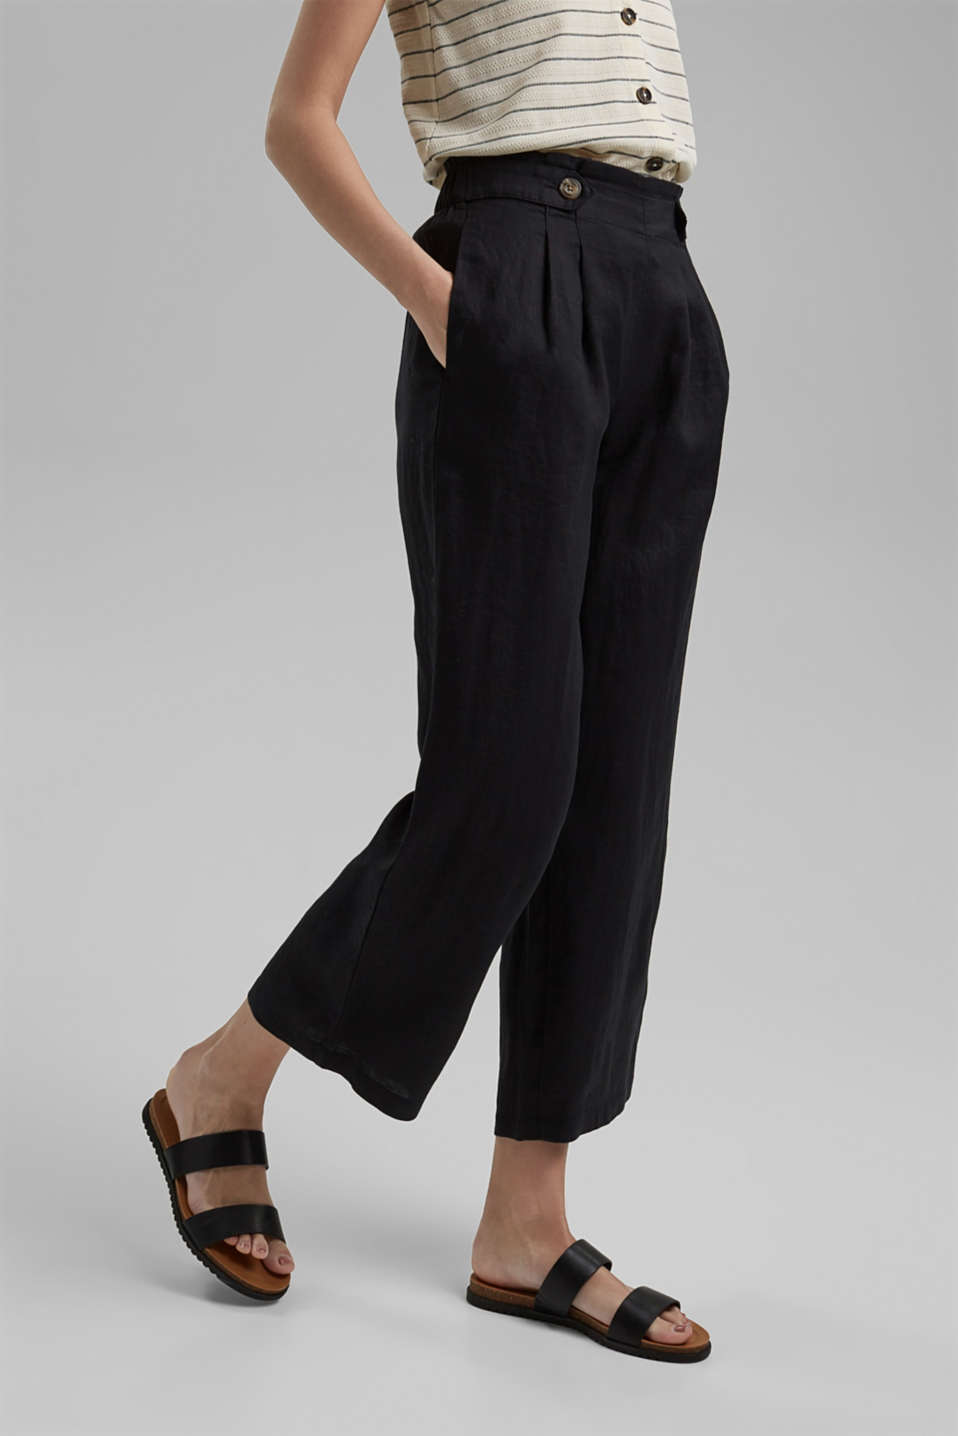 Esprit - Made of 100% linen: culottes with an elasticated waistband